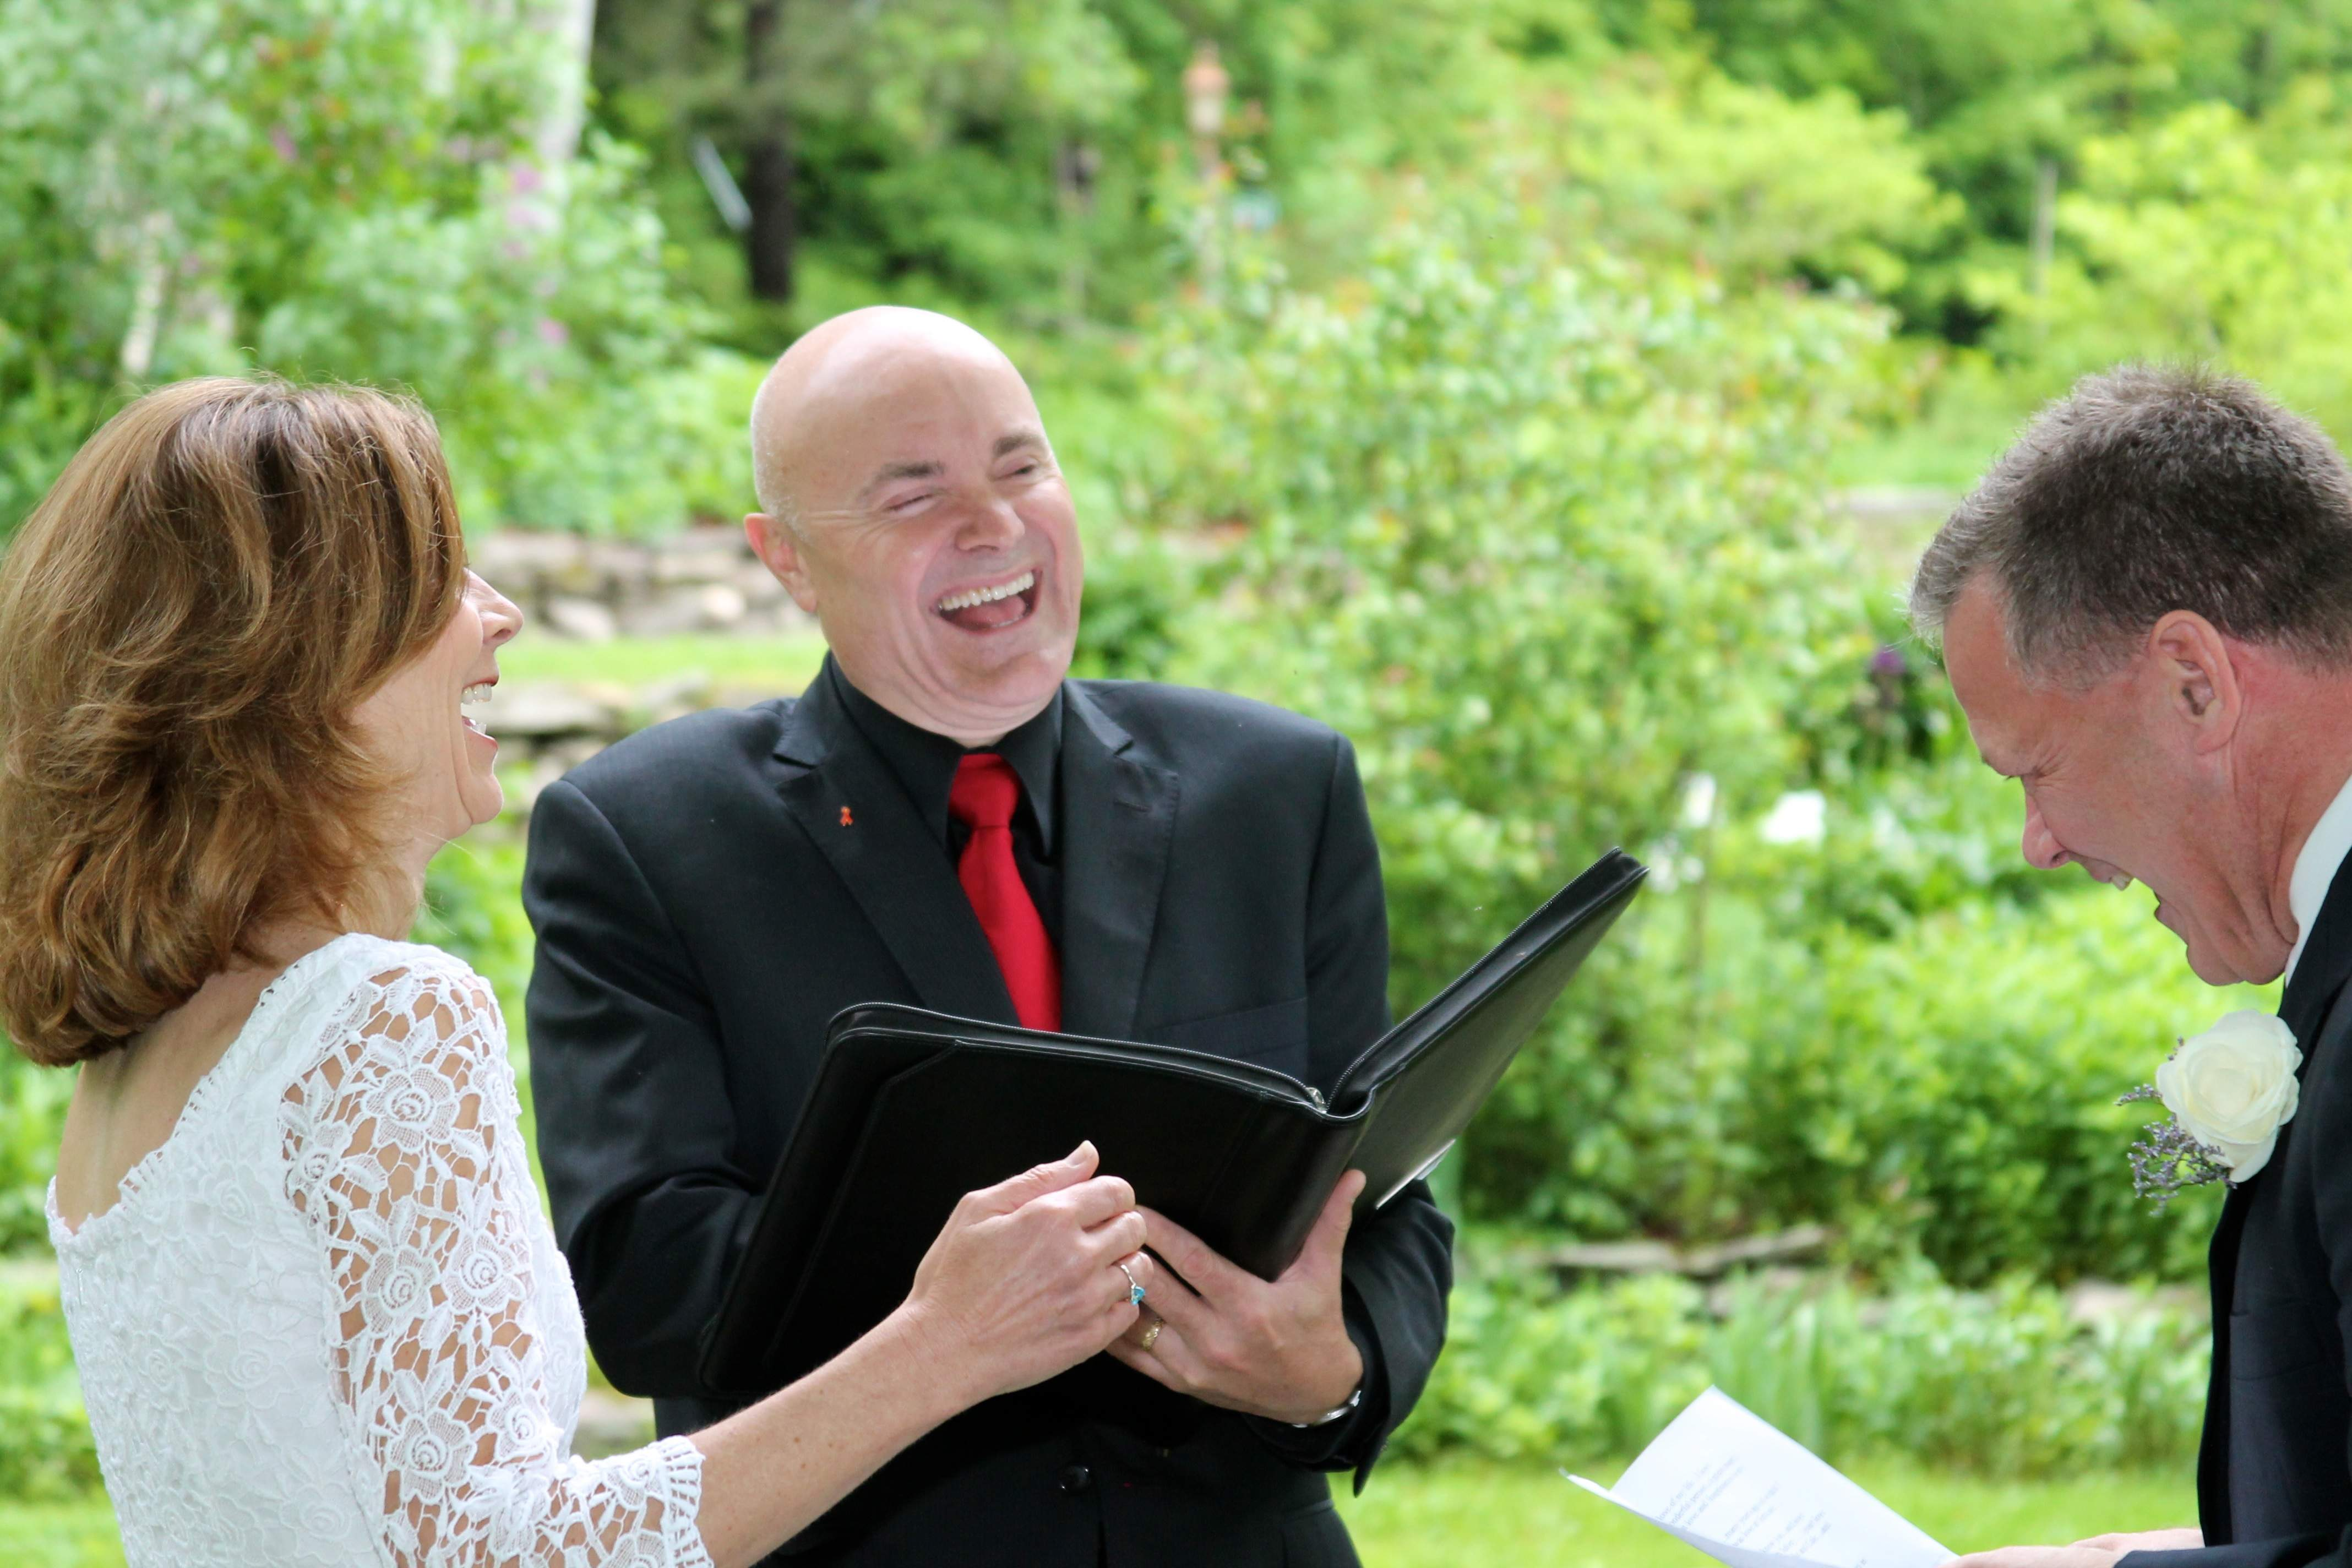 Greg Trulson, Justice of the Peace, Vermont Wedding Officiant, Elopements, West Hill House B&B